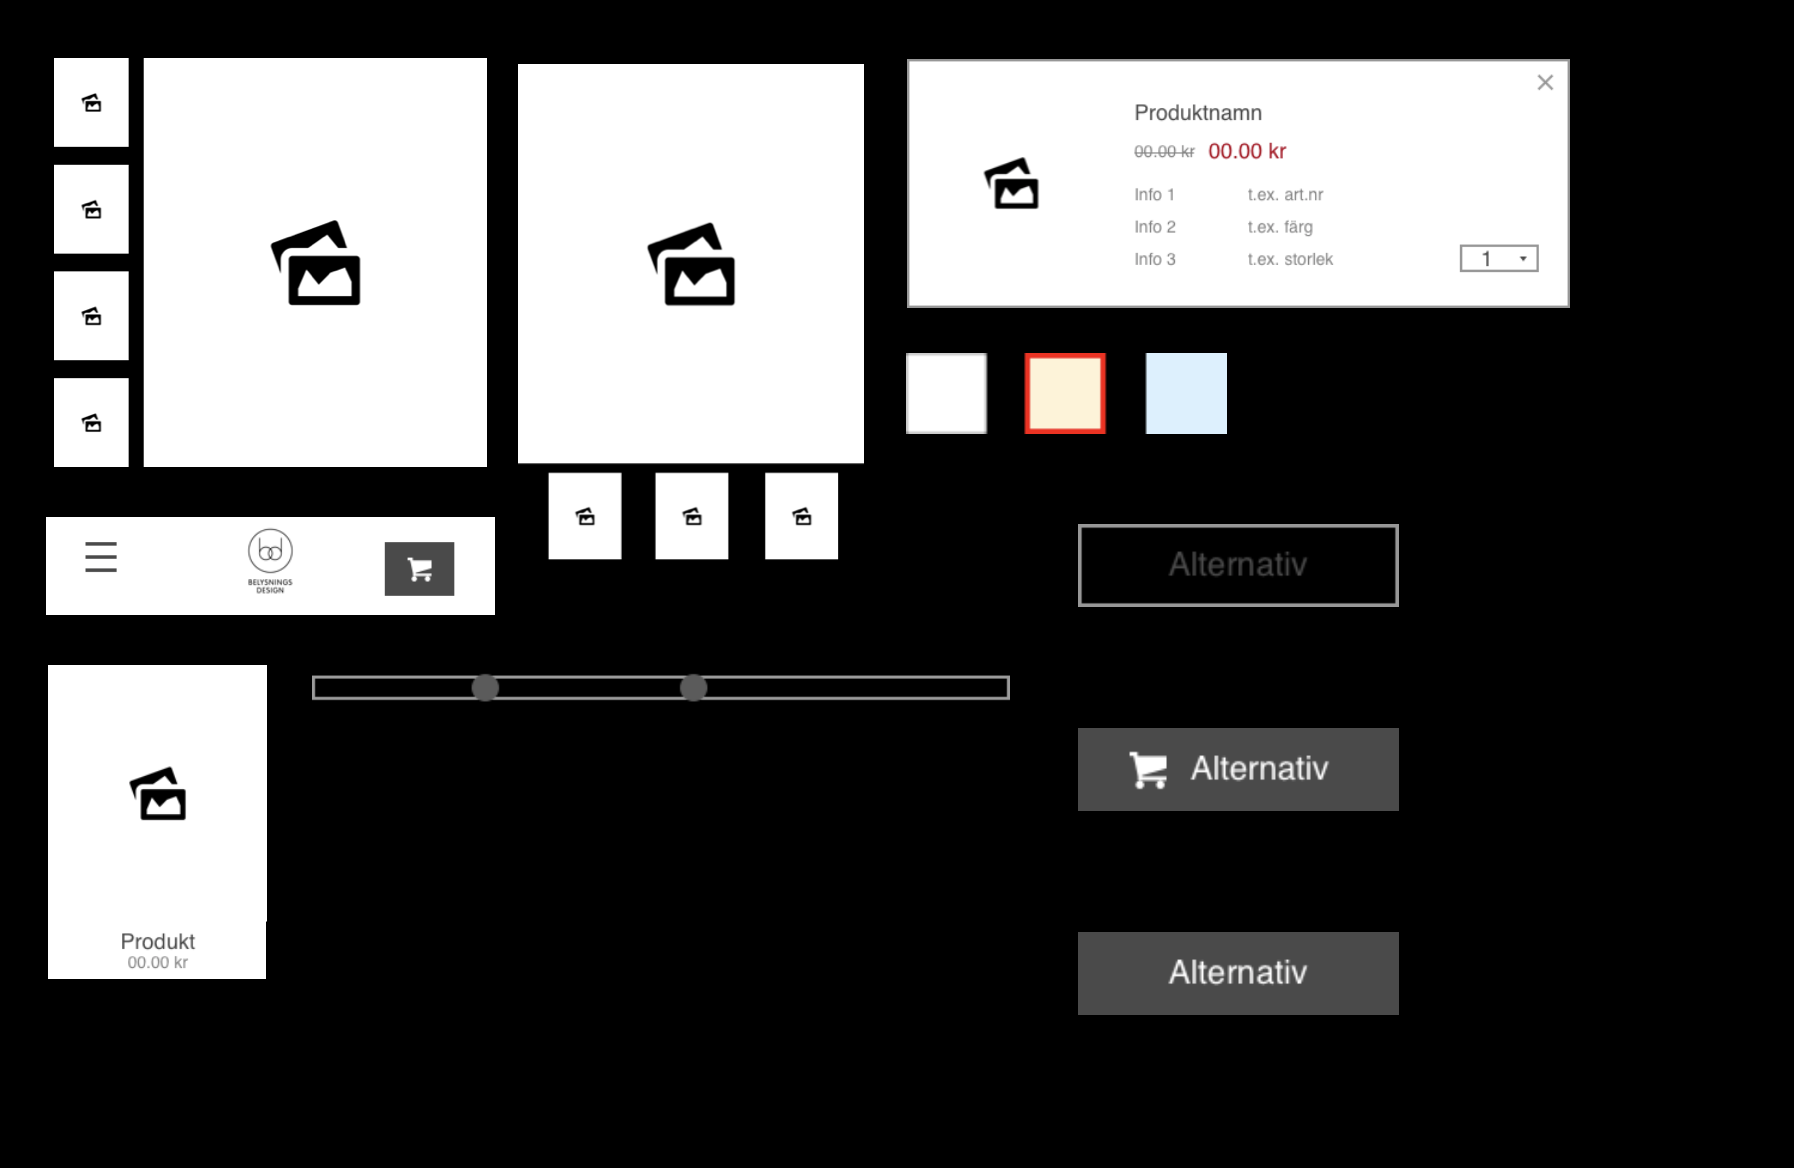 Design System Assets used in the final design: product cards and CTA:s